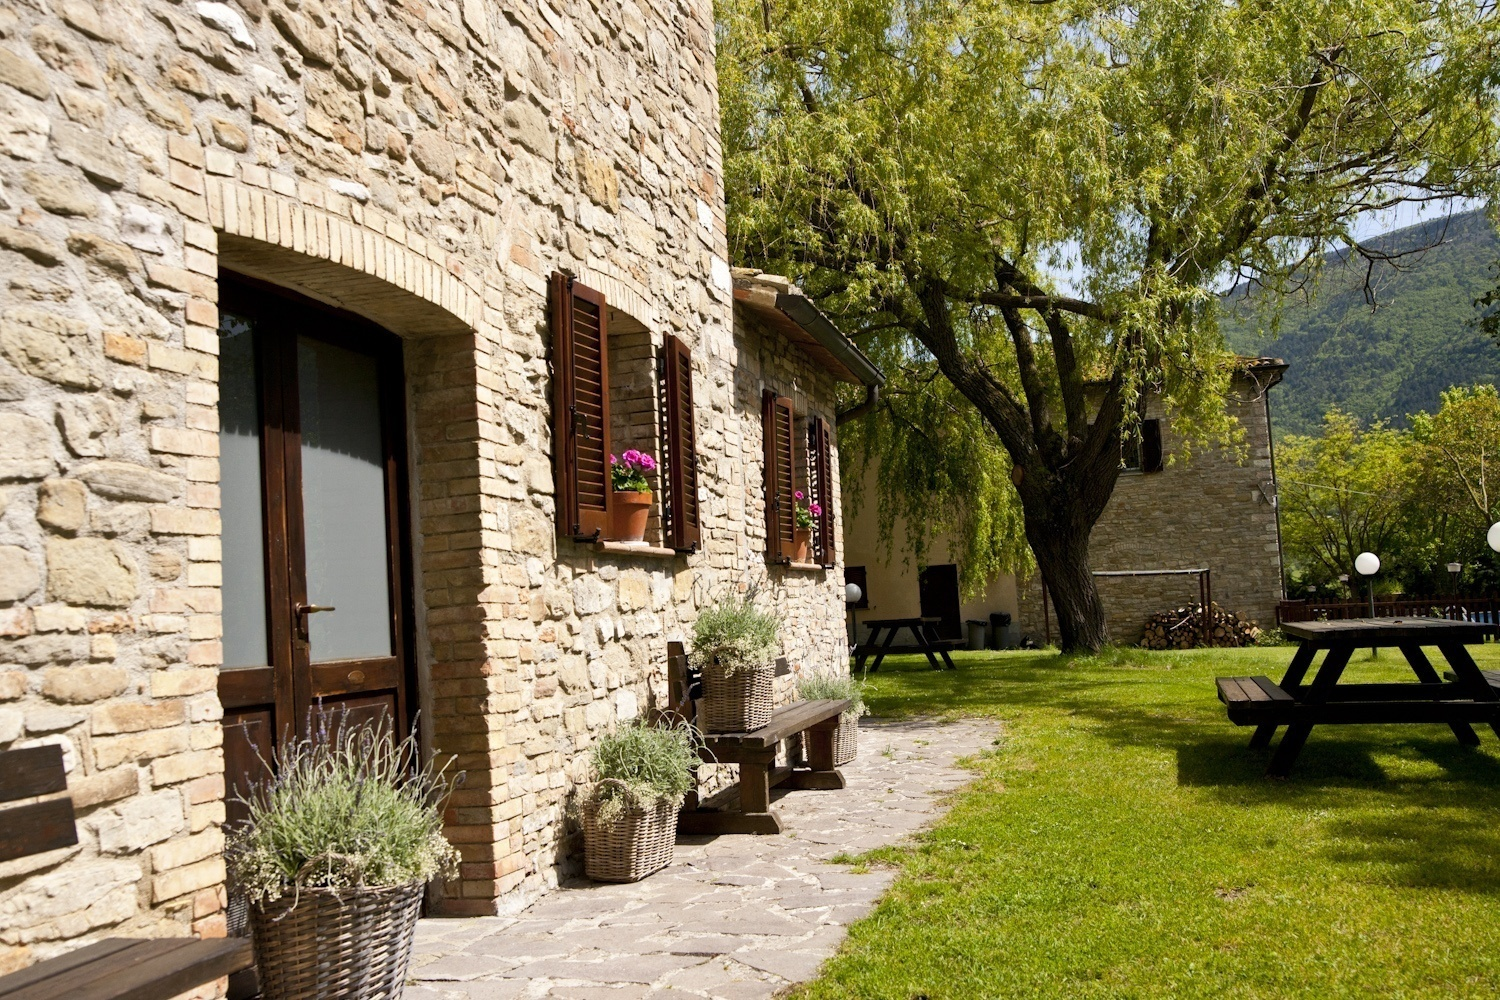 Agriturismo assisi nizzi agriturismo bed and - Agriturismo assisi con piscina ...